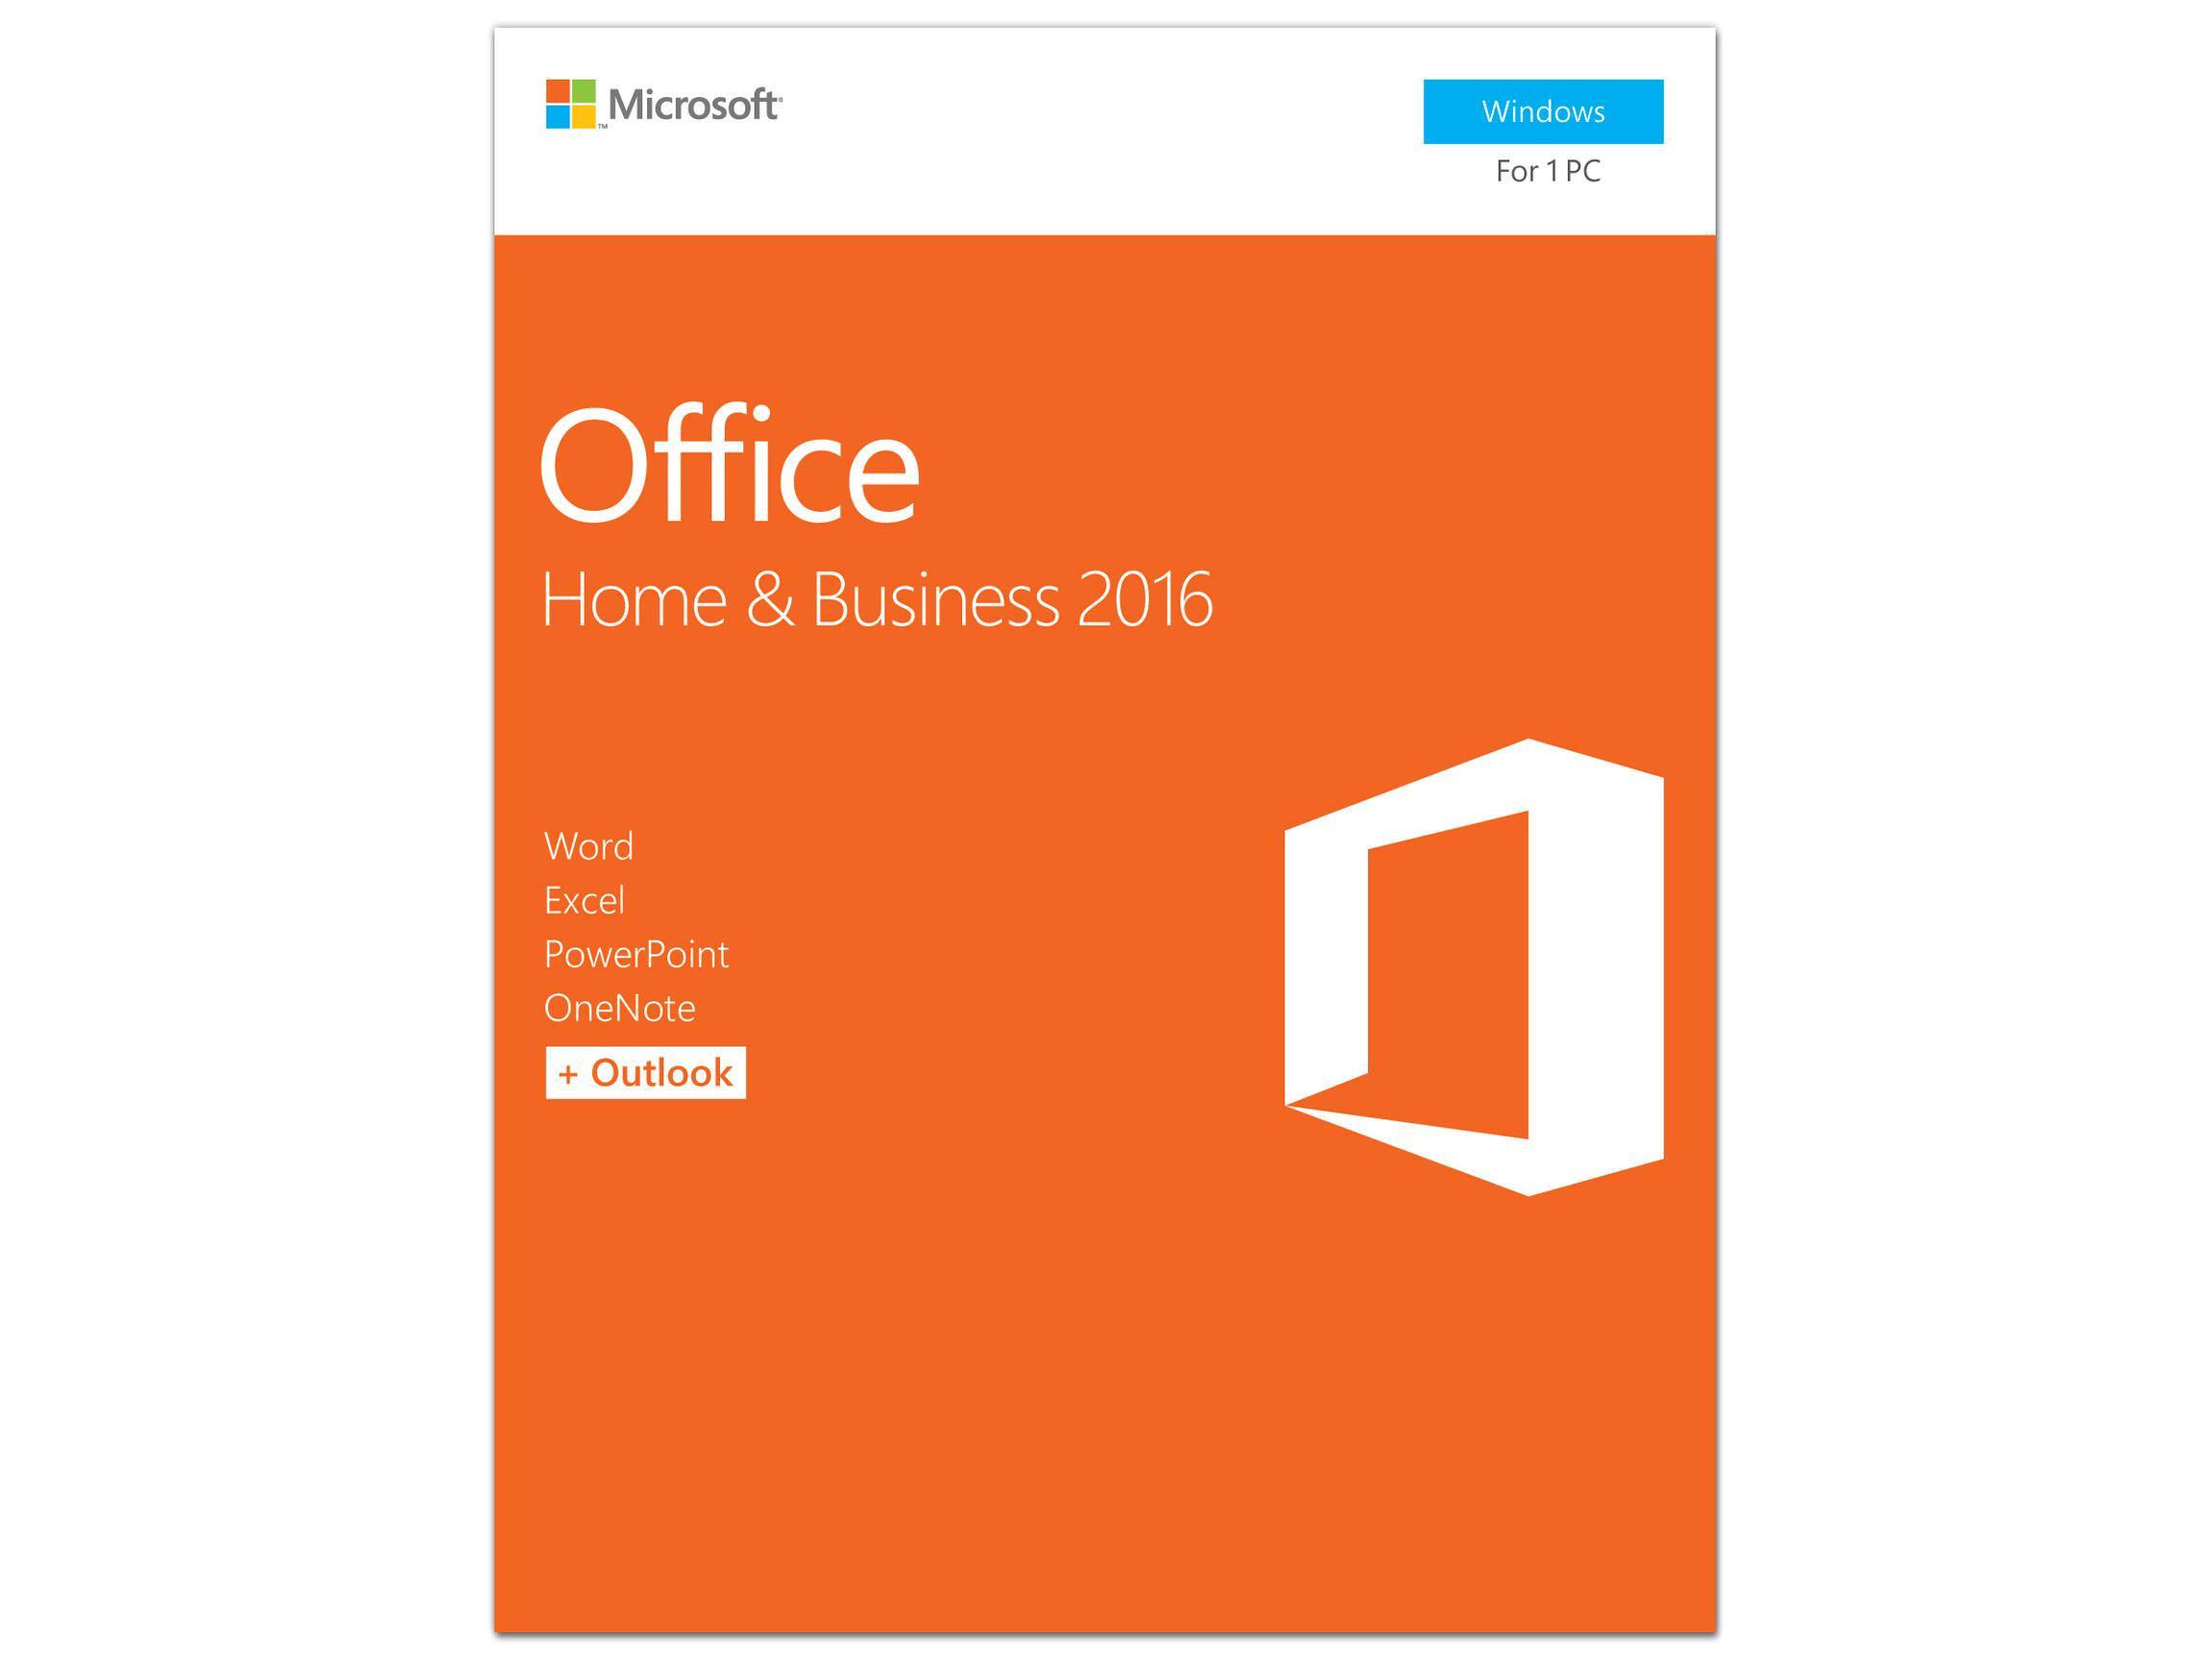 Microsoft Office Home and Business 2016 Product Key Card for $179.99 A/C